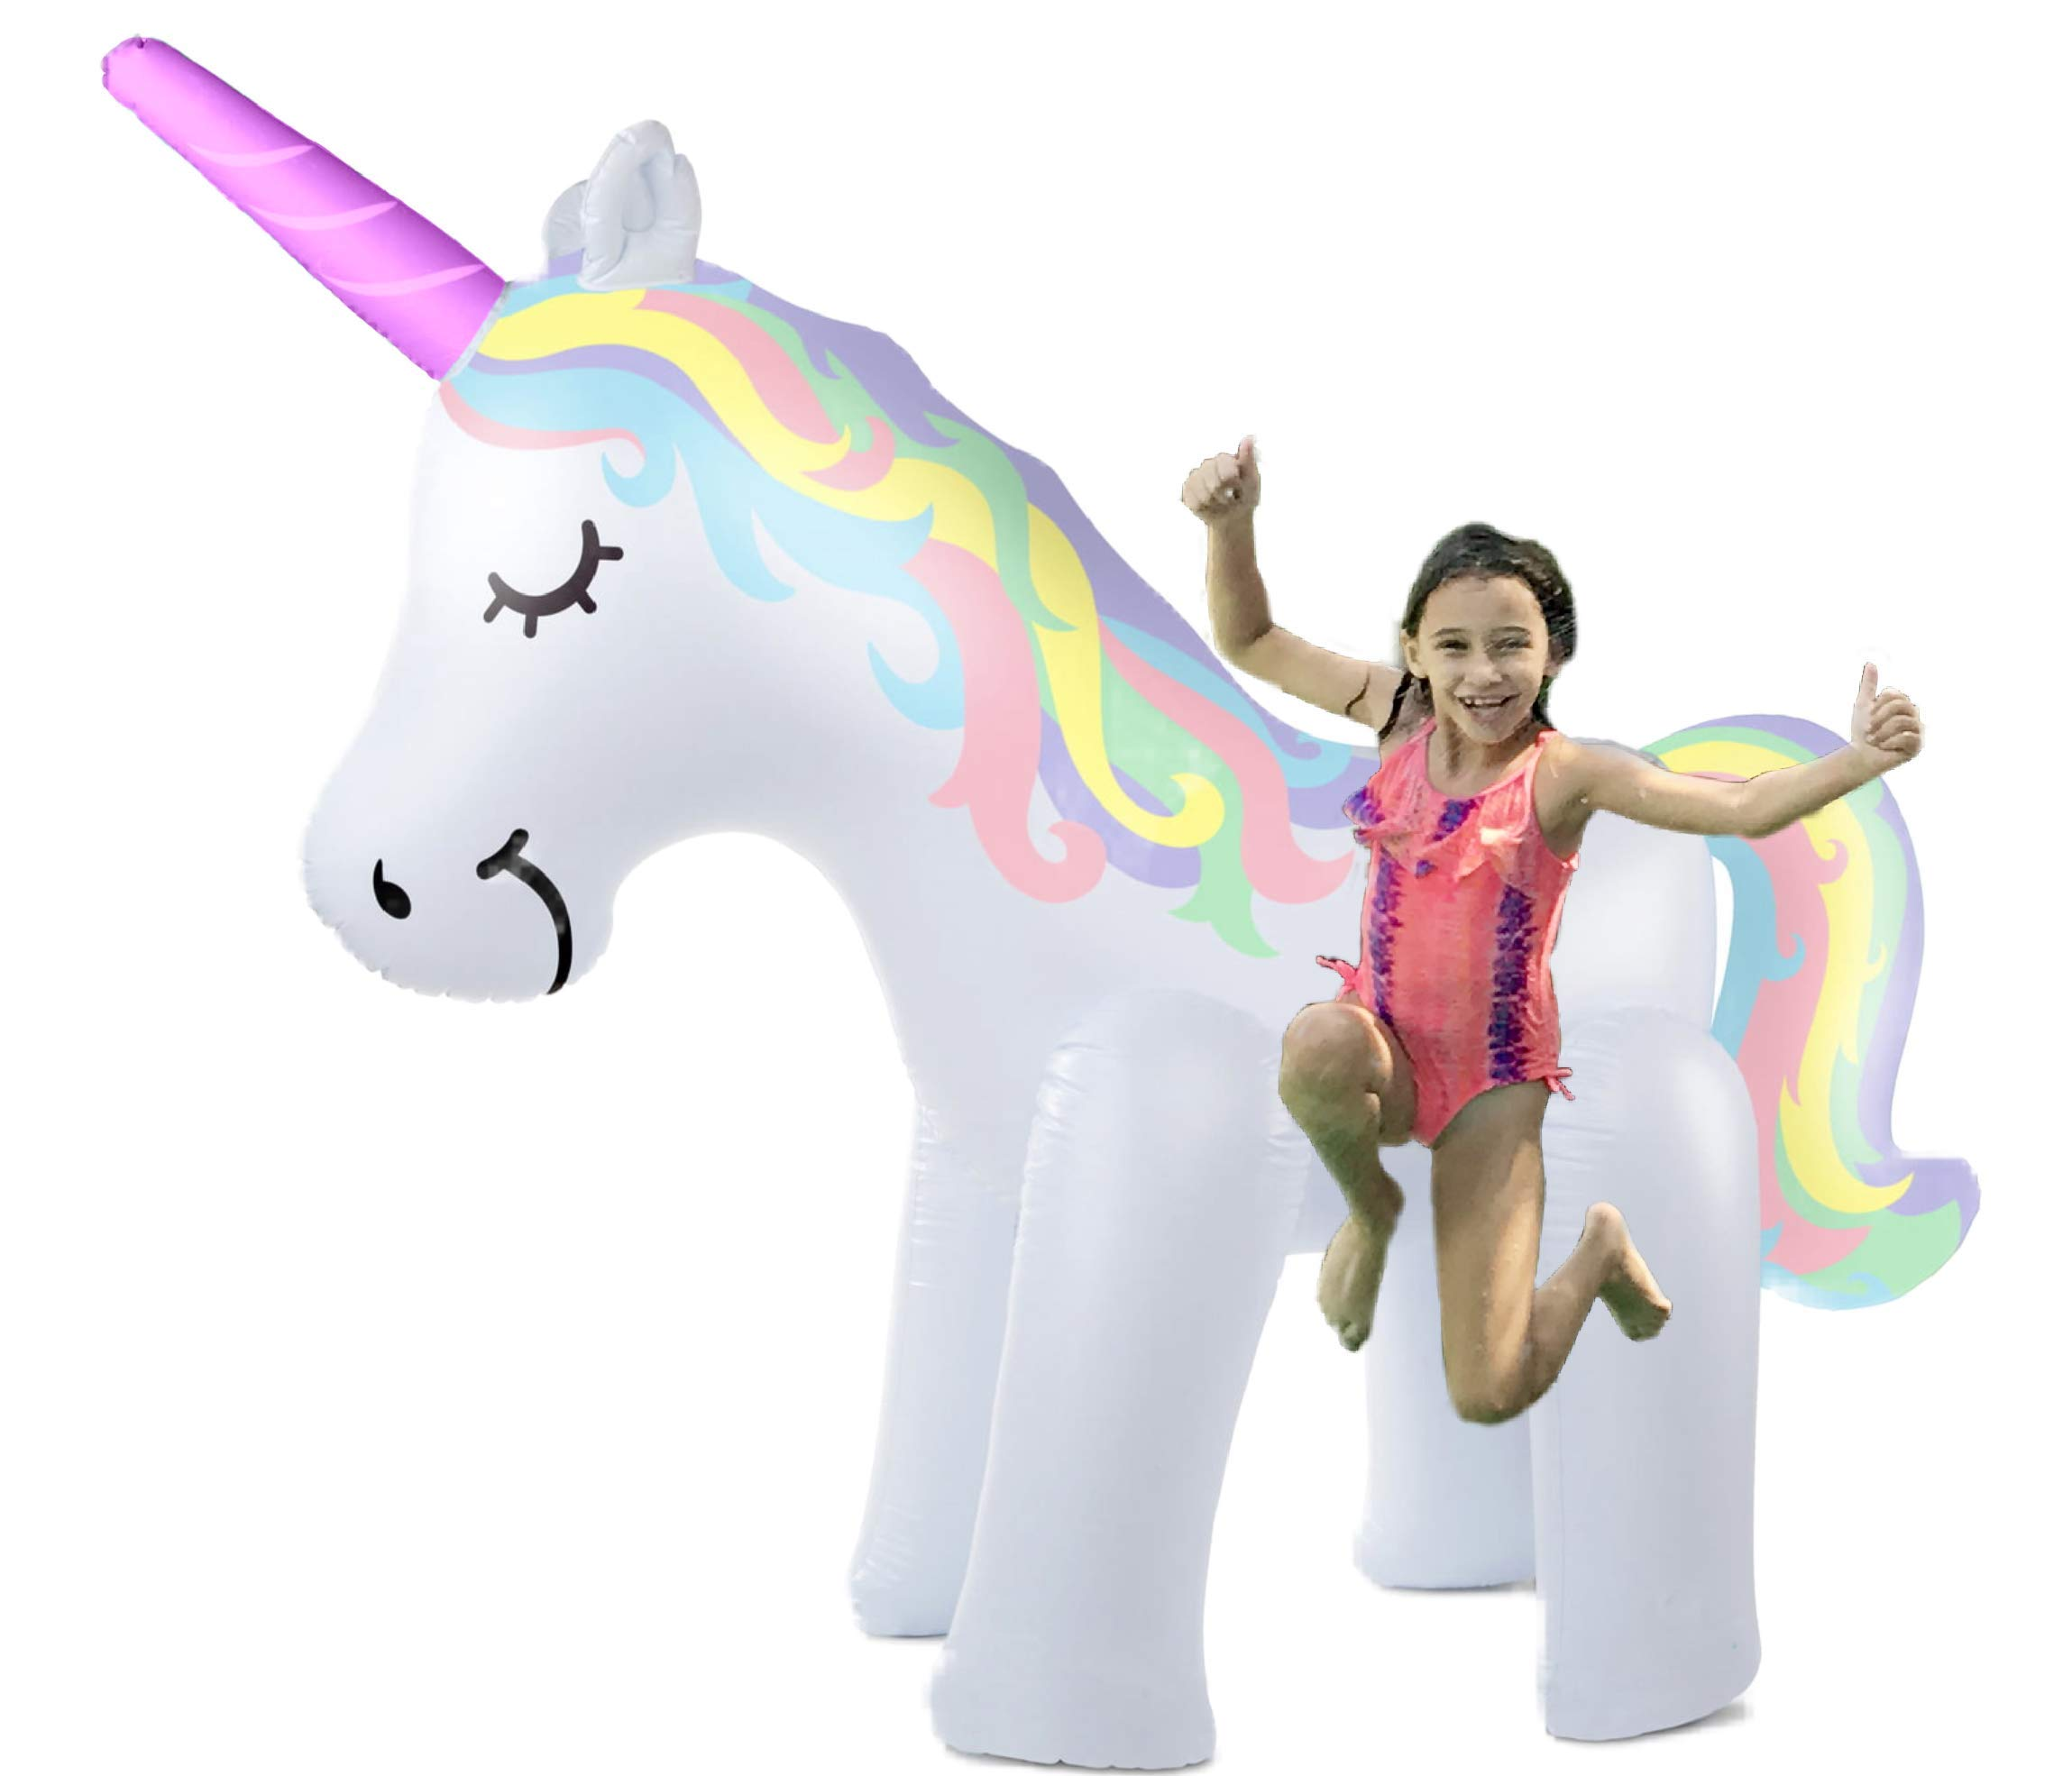 THE ORIGINAL UNICORN SPRINKLER Toy - Giant Inflatable Unicorn Sprinkler for Kids Adults - Great Outdoor Birthday Party Game for Backyard - Unicorn Gifts for Girls and Boys - Durable PVC by THE ORIGINAL UNICORN SPRINKLER